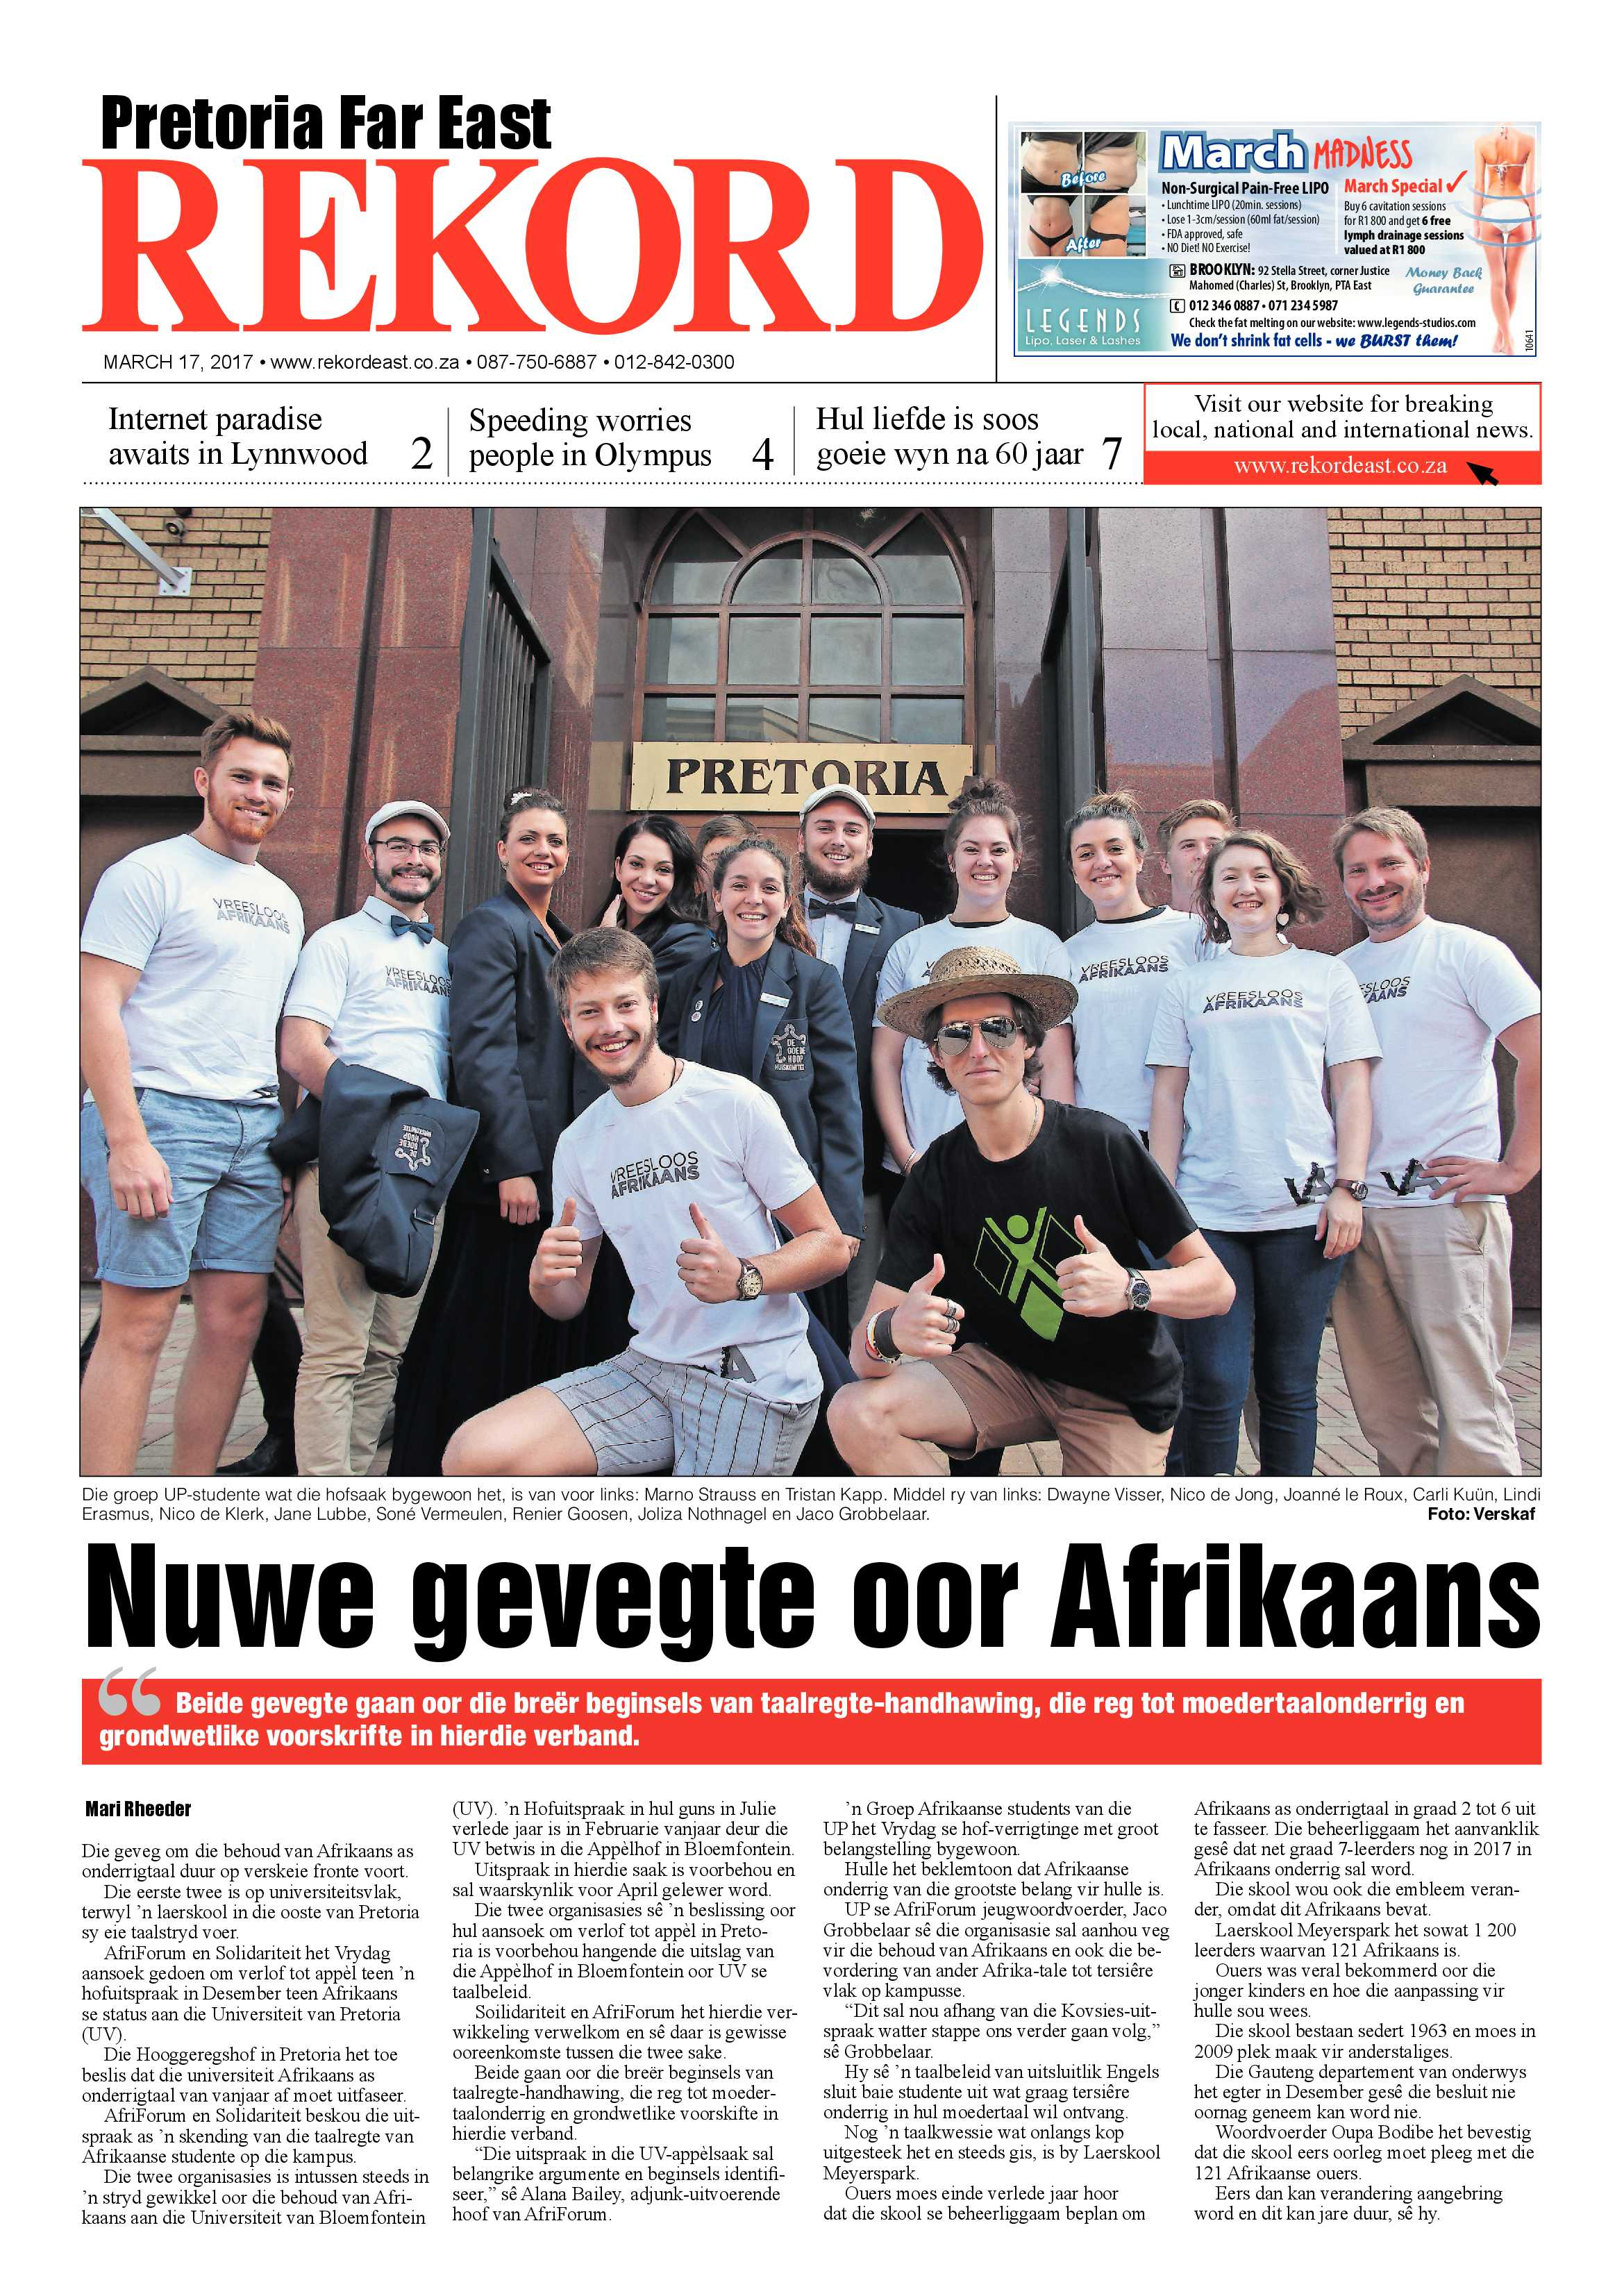 rekord-east-17-march-2017-epapers-page-1